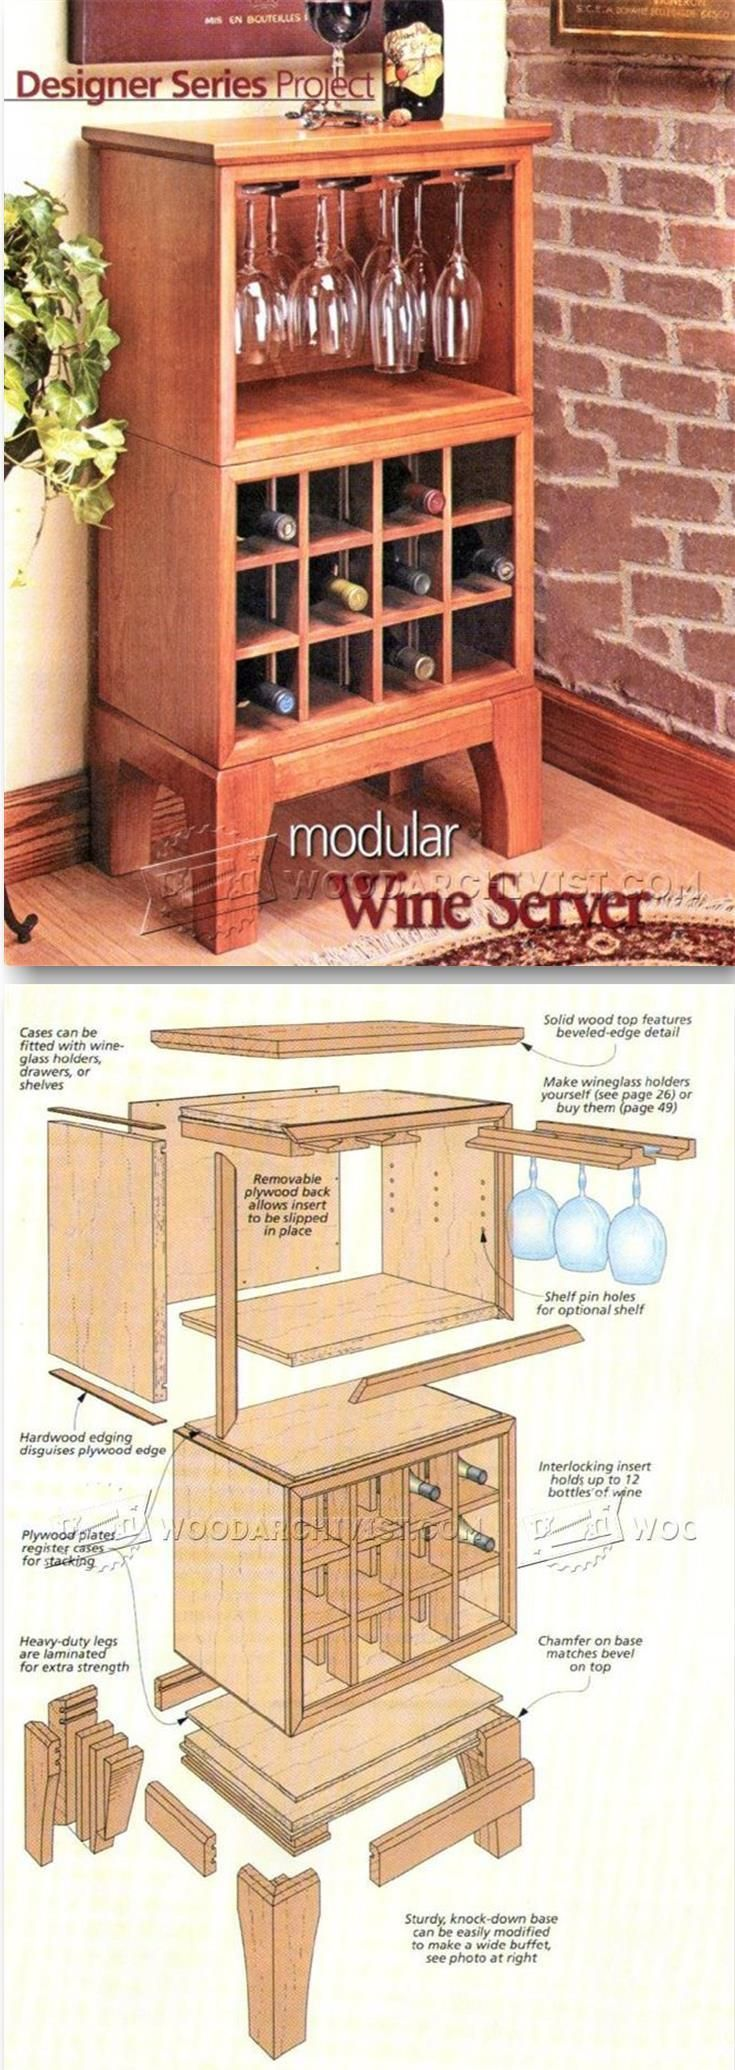 Wine Server Plans - Furniture Plans and Projects | http://WoodArchivist.com